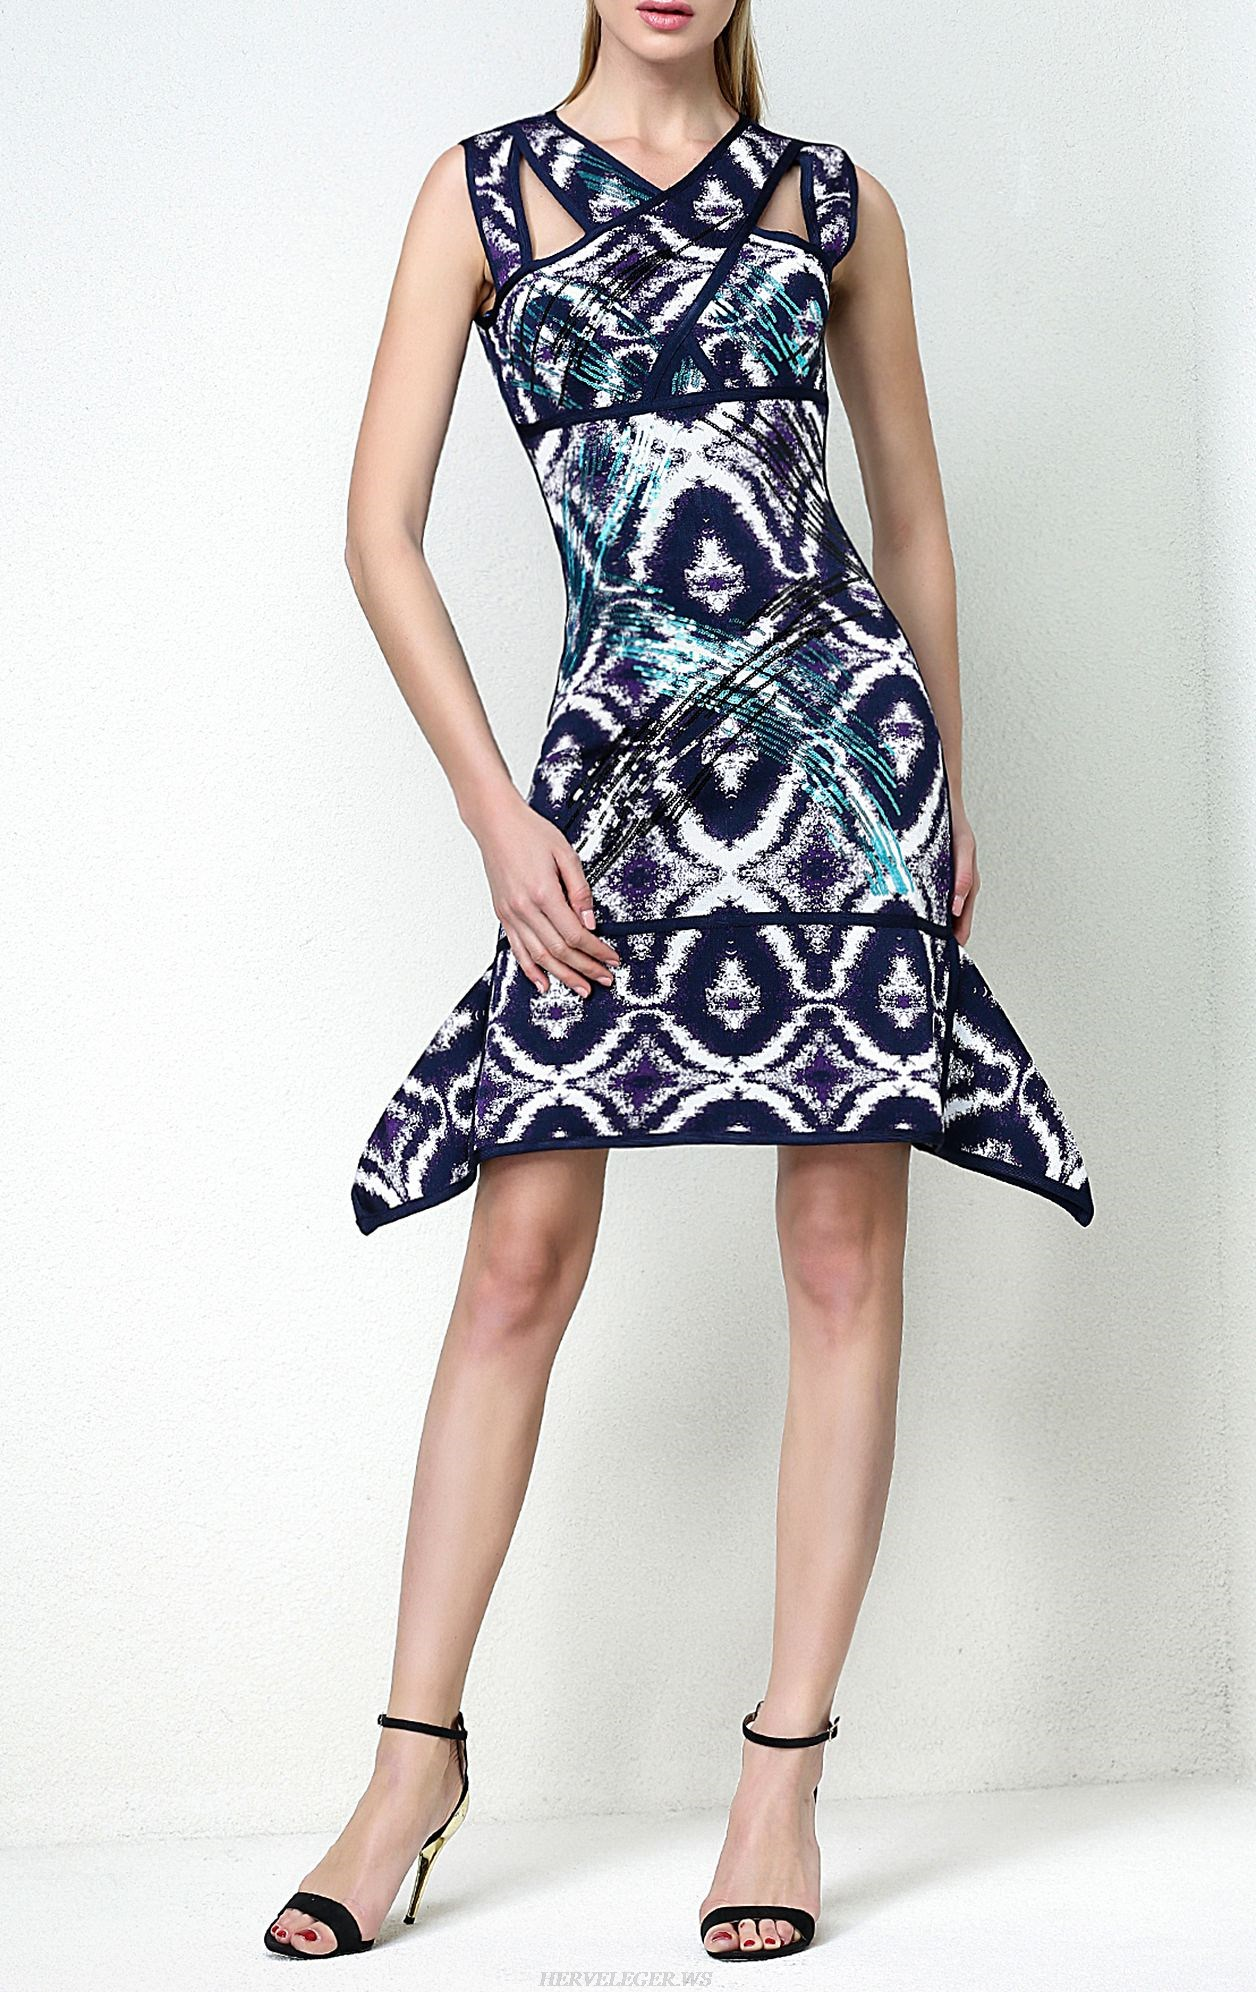 Herve Leger Natalia Sequined Ikat Jacquard Wave Dress